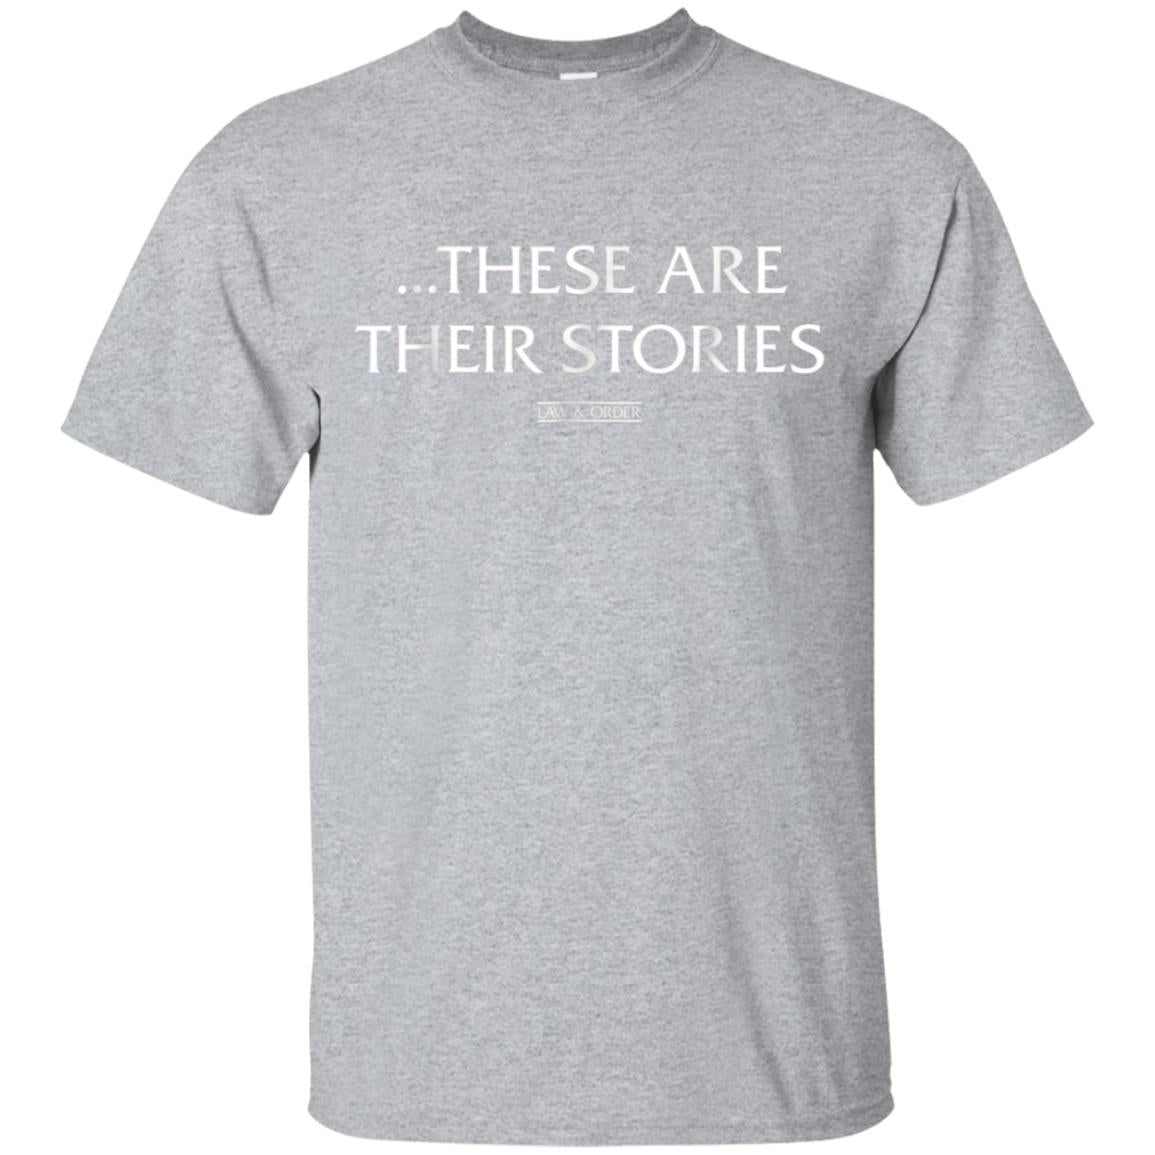 Law & Order SVU These Are Their Stories Comfortable Tee 99promocode